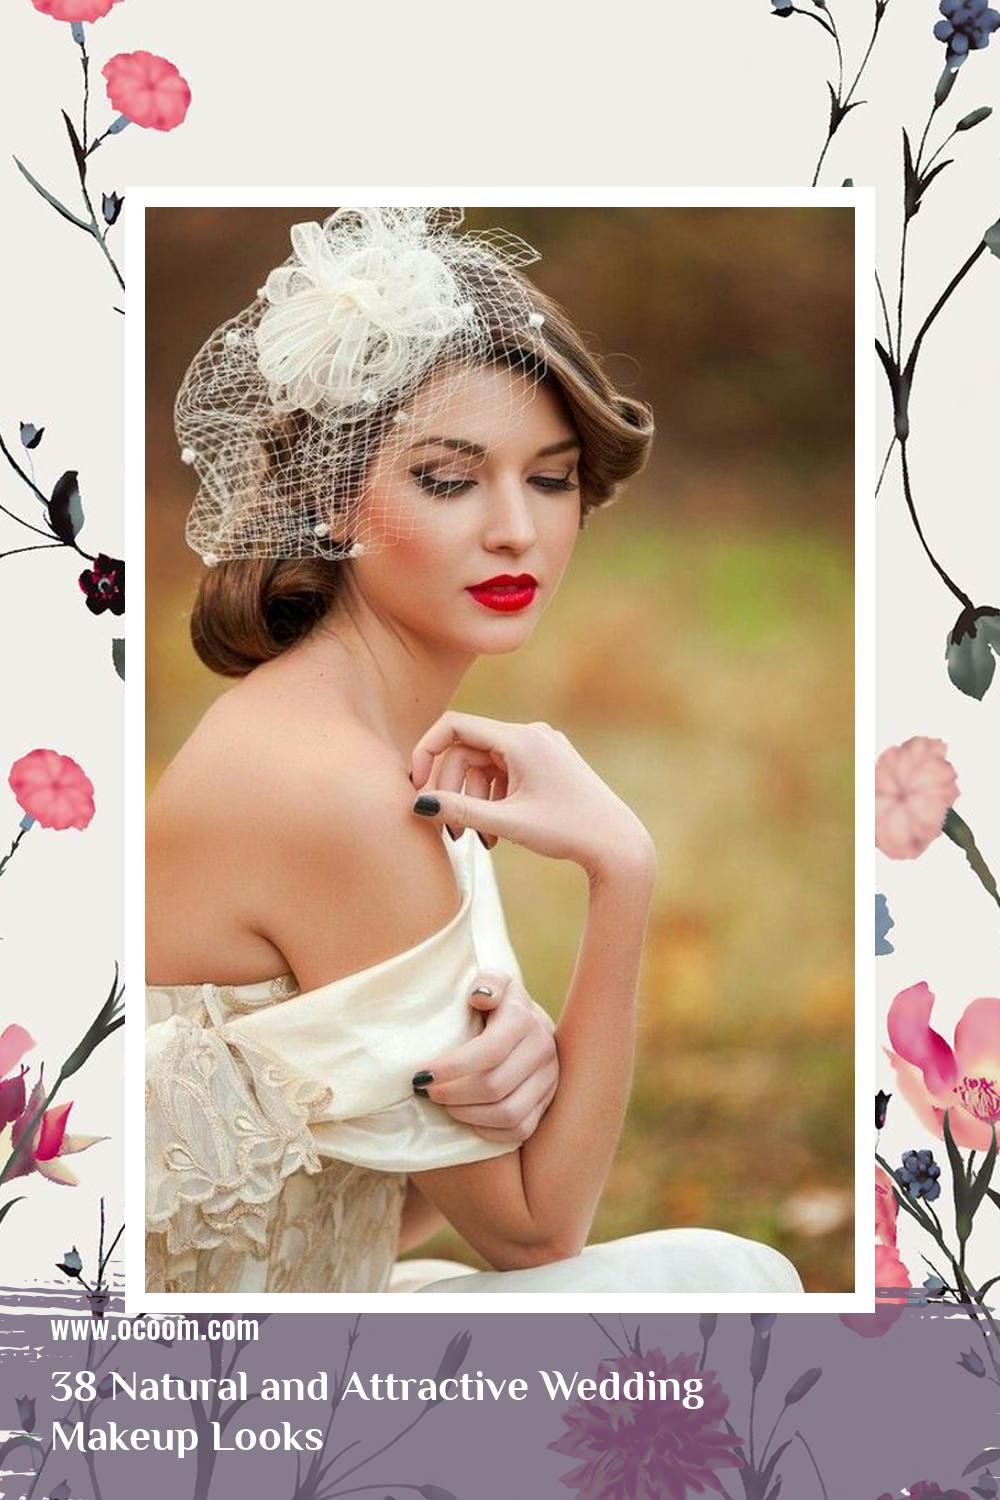 38 Natural and Attractive Wedding Makeup Looks 24